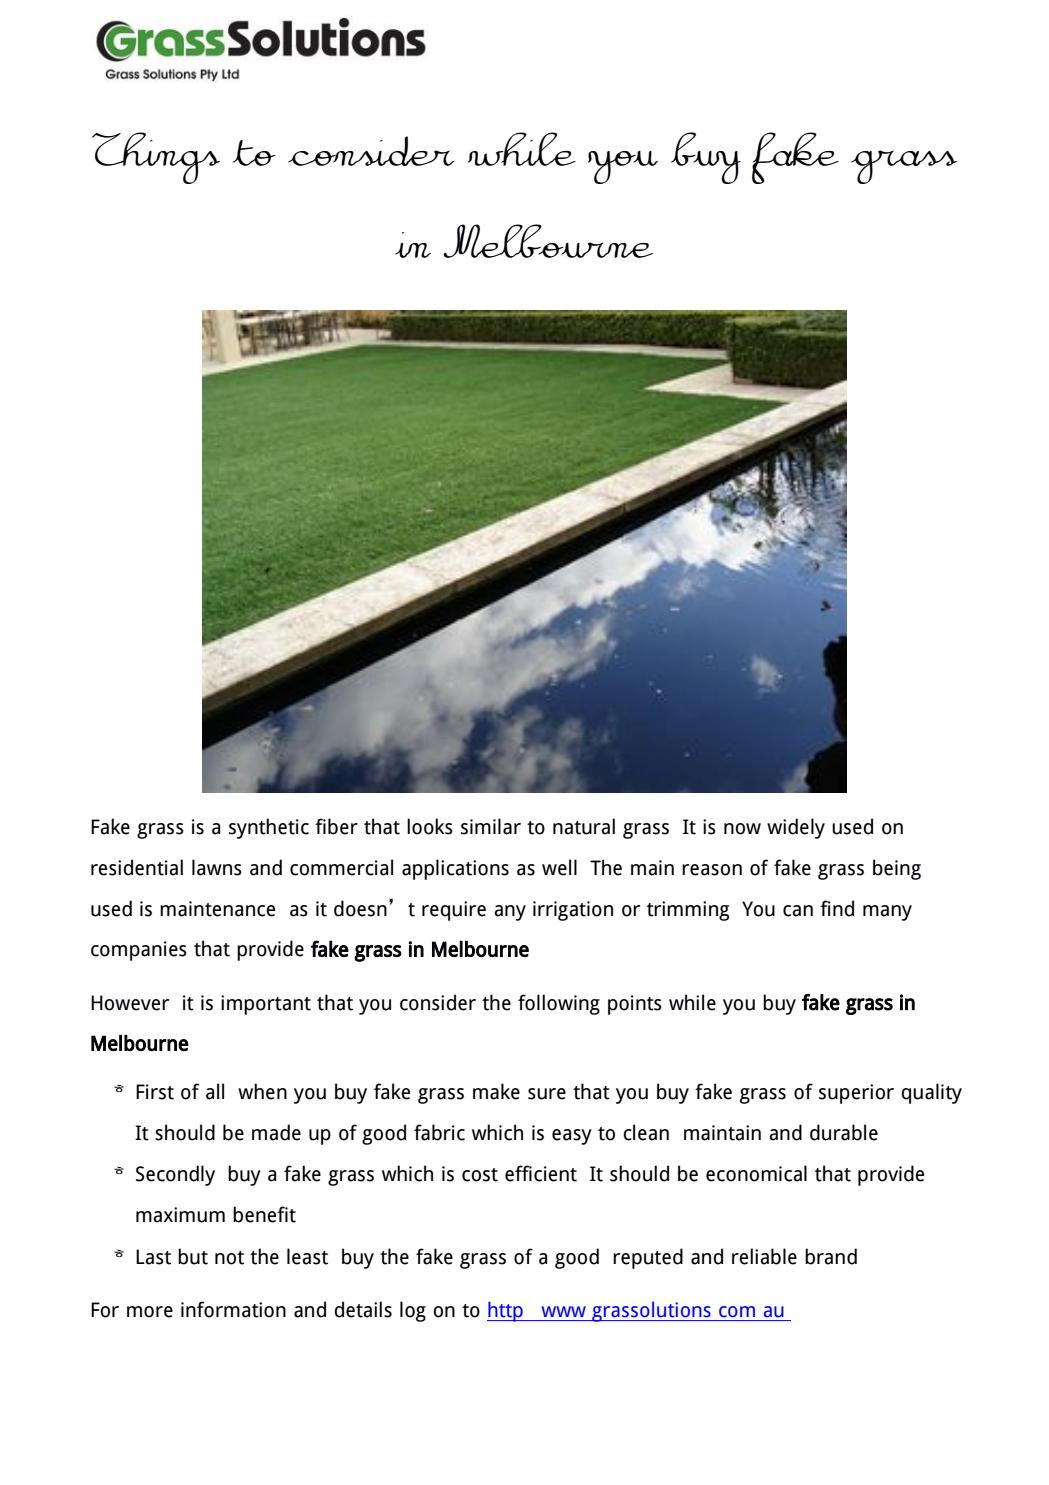 Buy Fake Grass Things To Consider While You Buy Fake Grass In Melbourne